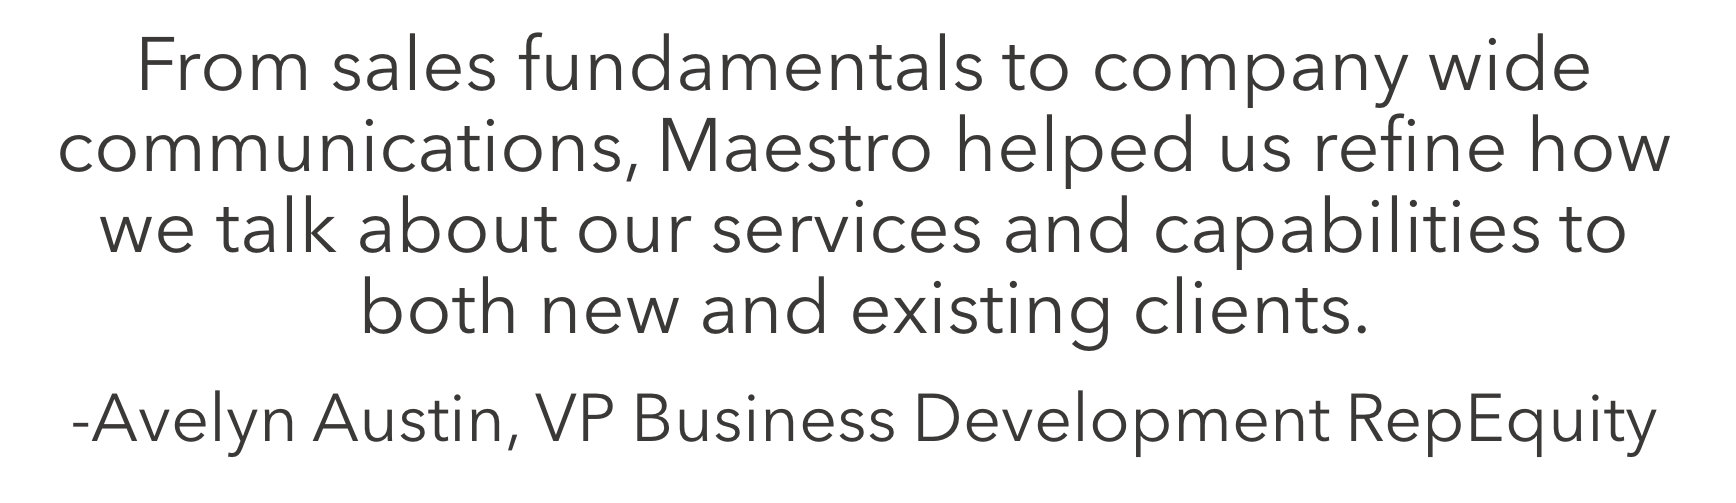 From sales fundamentals to company wide communications, Maestro helped us refine how we talk about our services and capabilities to both new and existing clients.